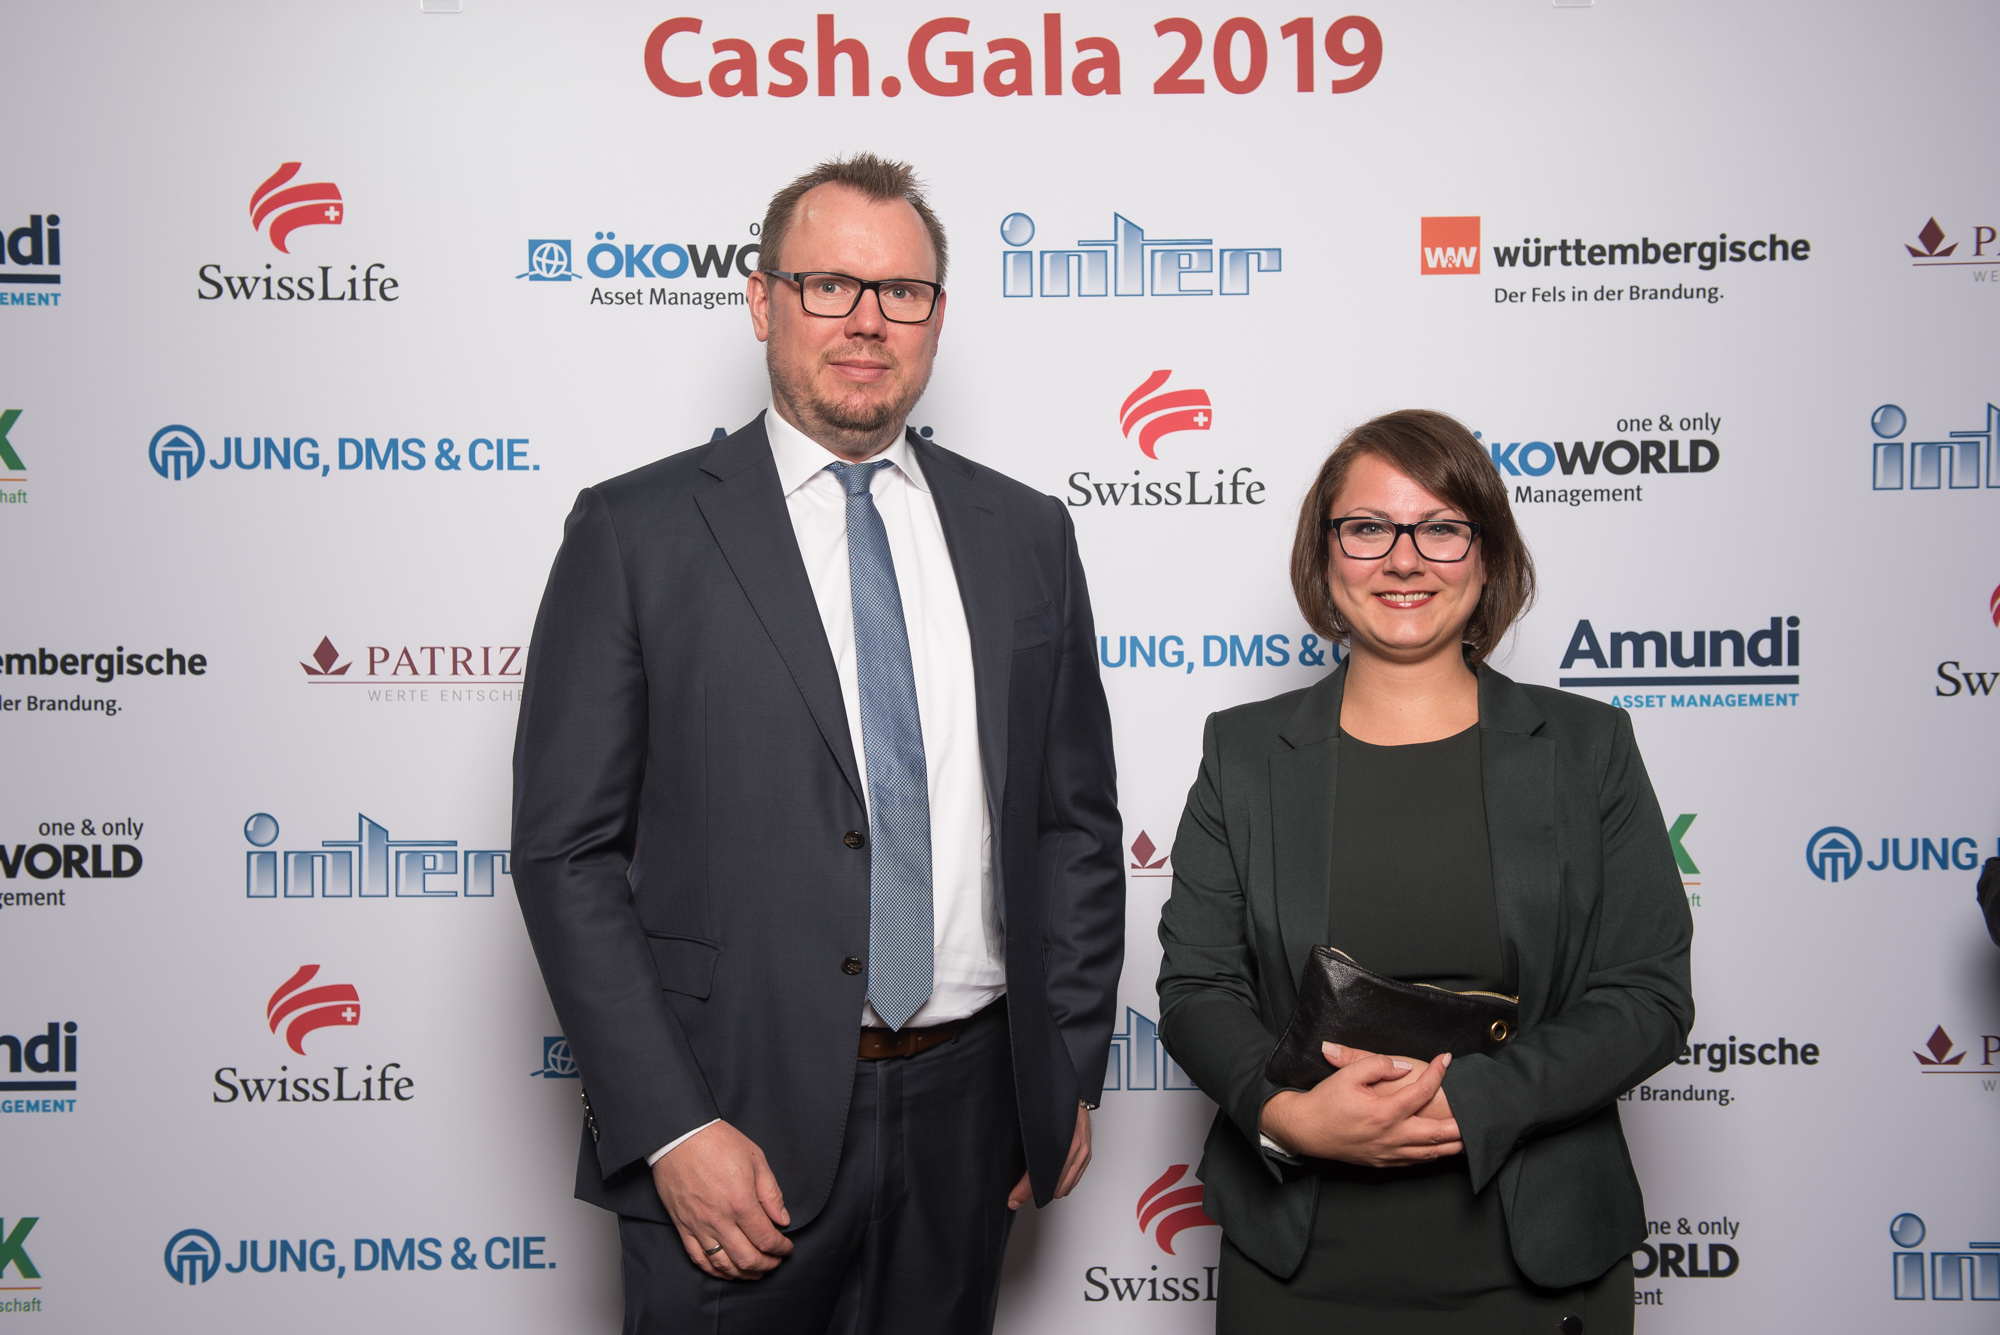 CashGala 2019 0024 AM DSC7010 in Cash.Gala 2019